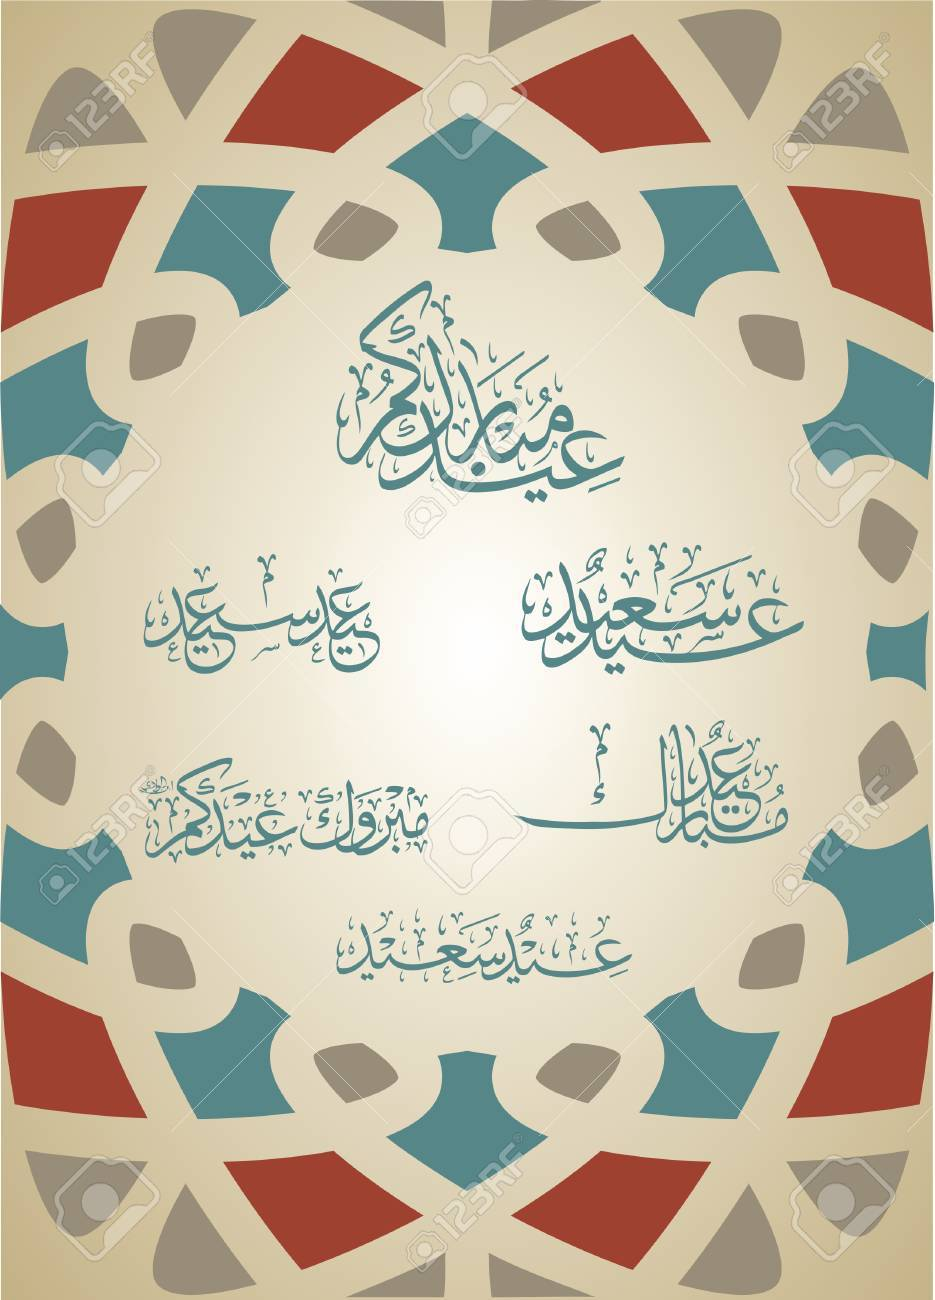 Text arabic islamic calligraphy vectors of greeting it is commonly text arabic islamic calligraphy vectors of greeting it is commonly used to greet during eid and m4hsunfo